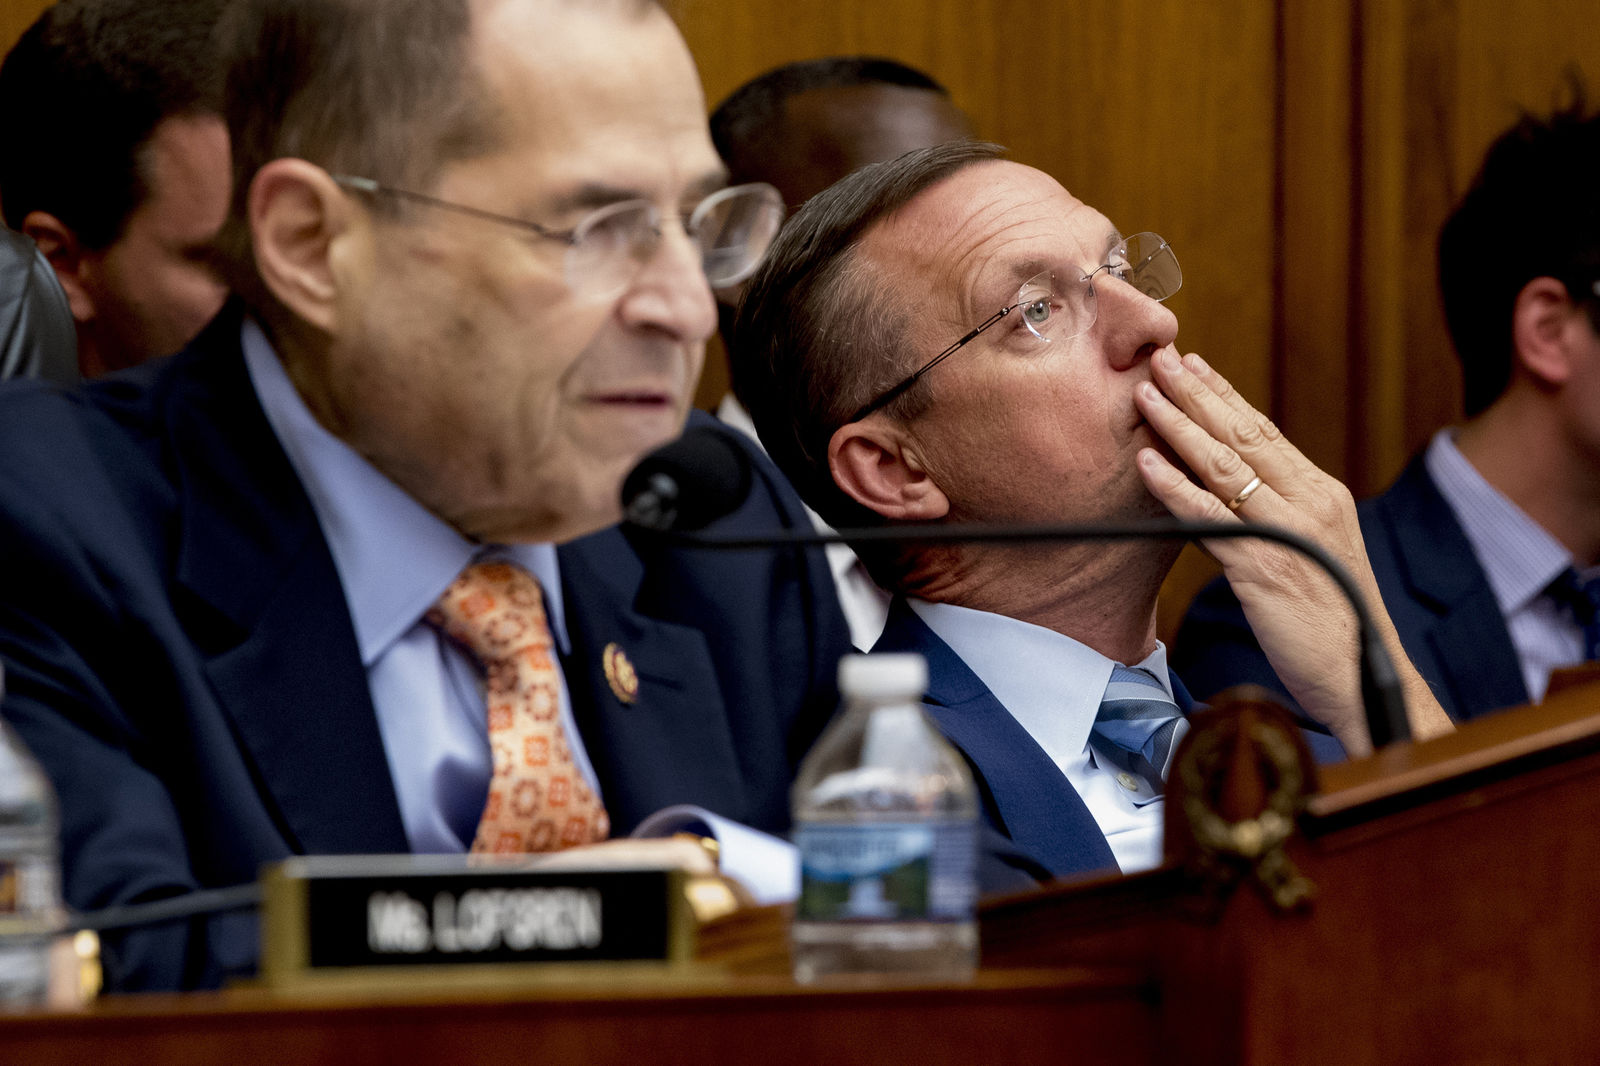 Ranking Member Rep. Doug Collins, R-Ga., right, listens as Judiciary Committee Chairman Jerrold Nadler, D-N.Y., left, speaks at a House Judiciary Committee hearing without former White House Counsel Don McGahn, who was a key figure in special counsel Robert Mueller's investigation, on Capitol Hill in Washington. (AP Photo/Andrew Harnik)